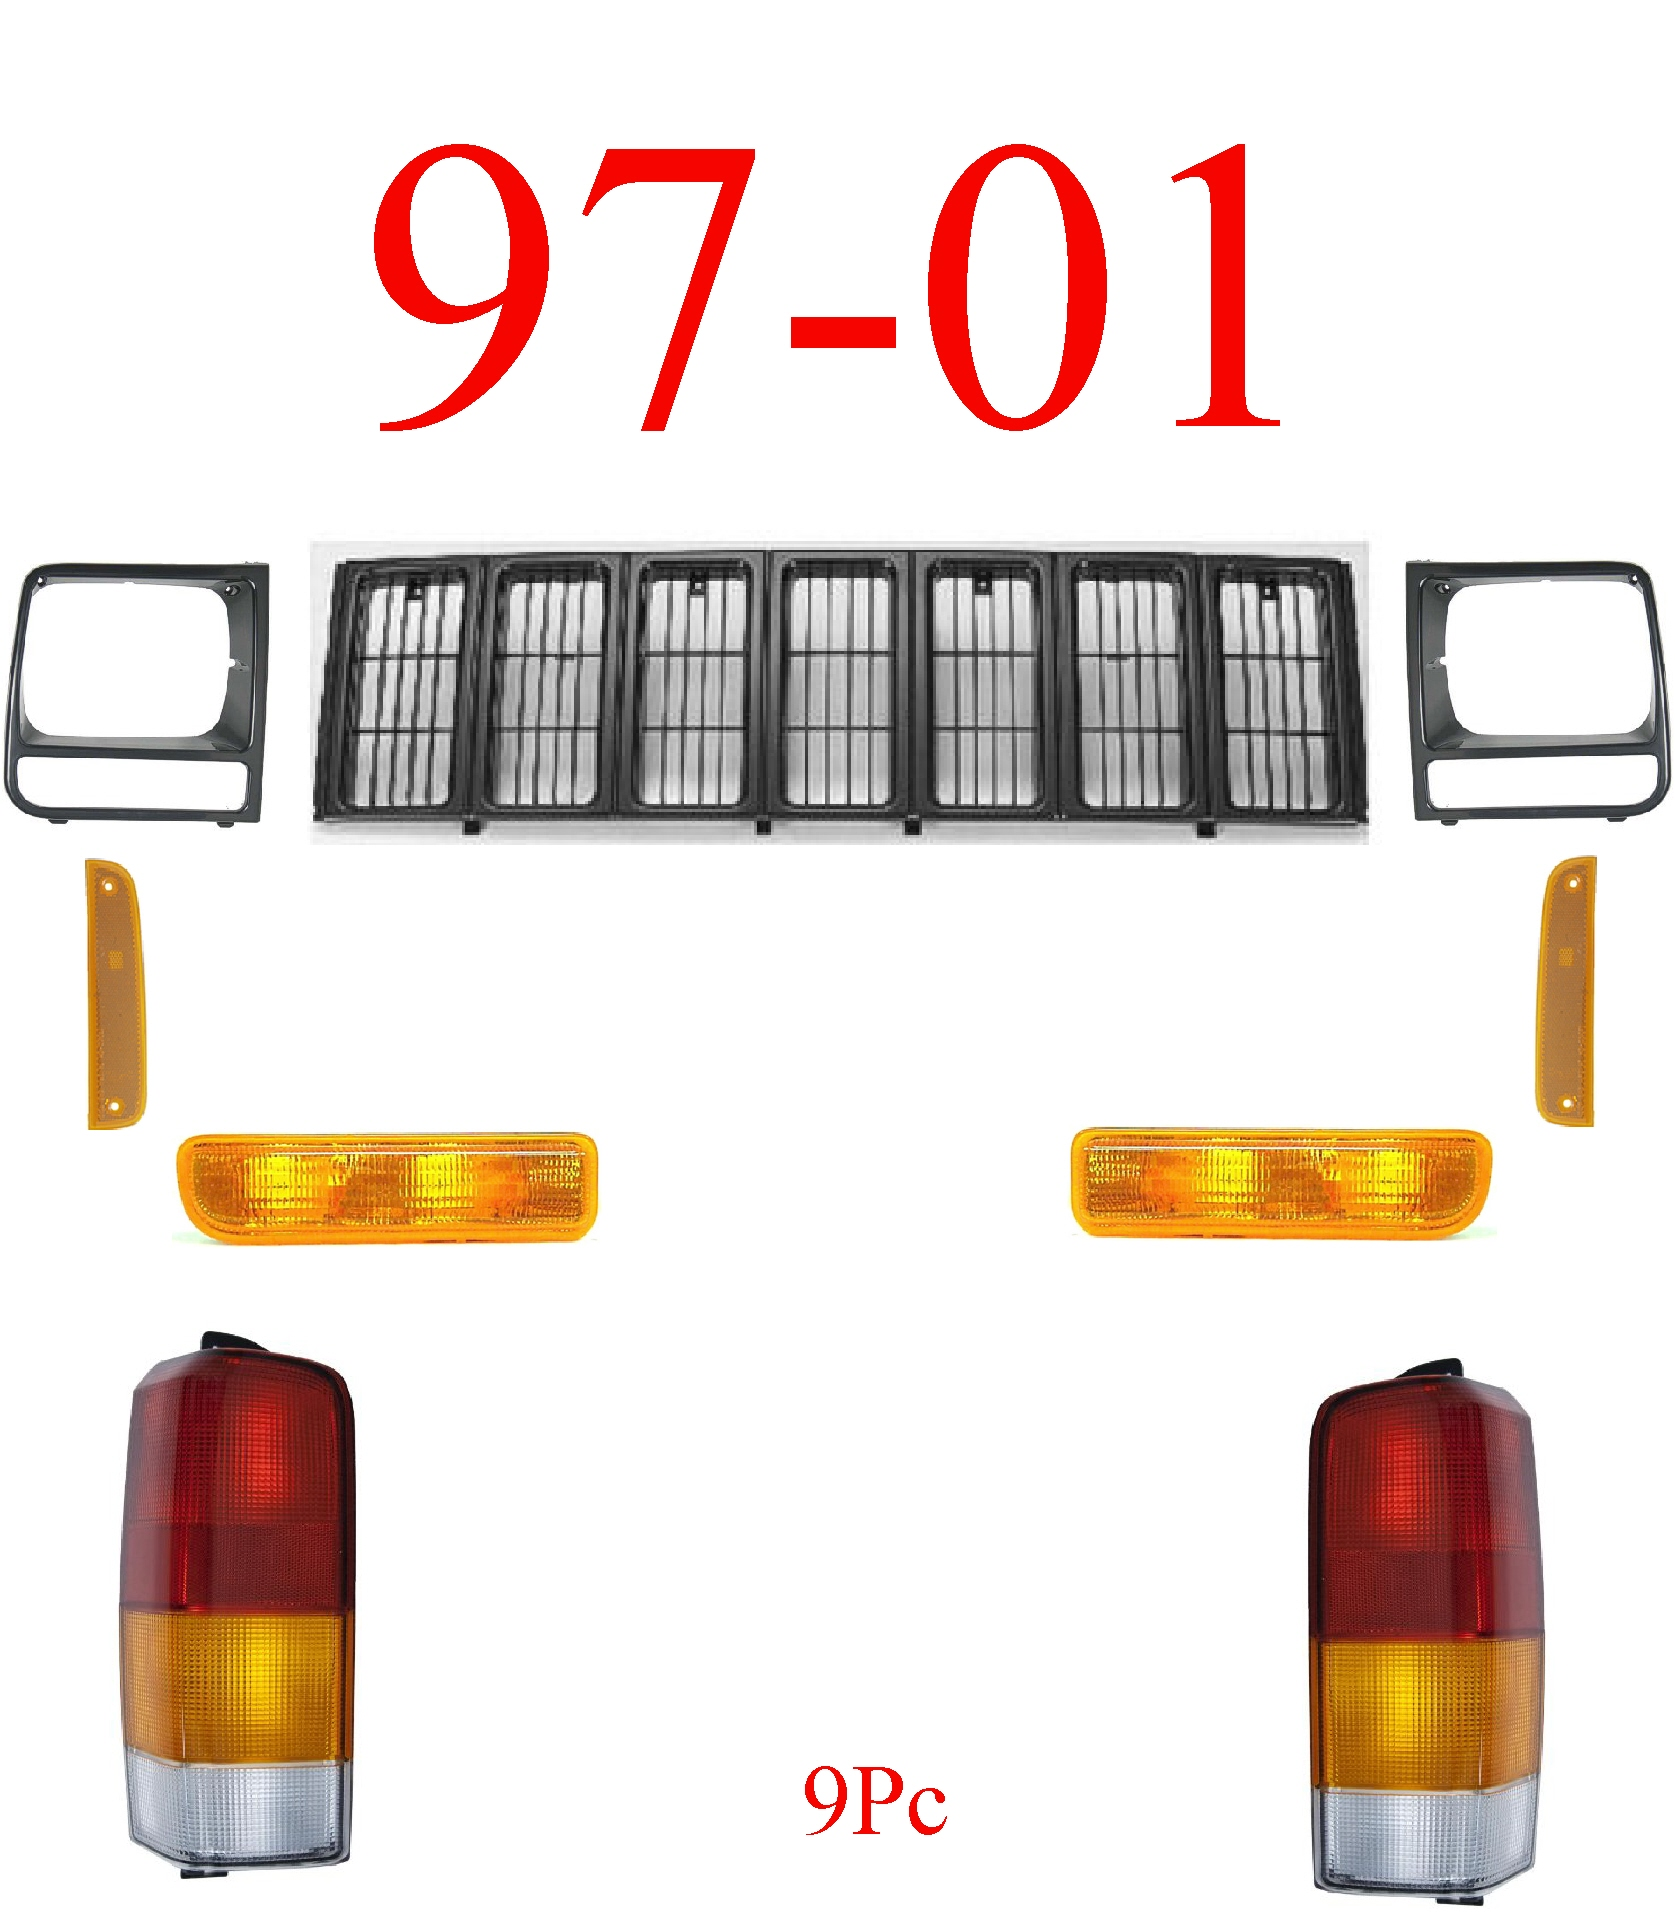 97-01 Jeep Cherokee 9Pc Grill, Doors & Tail Light